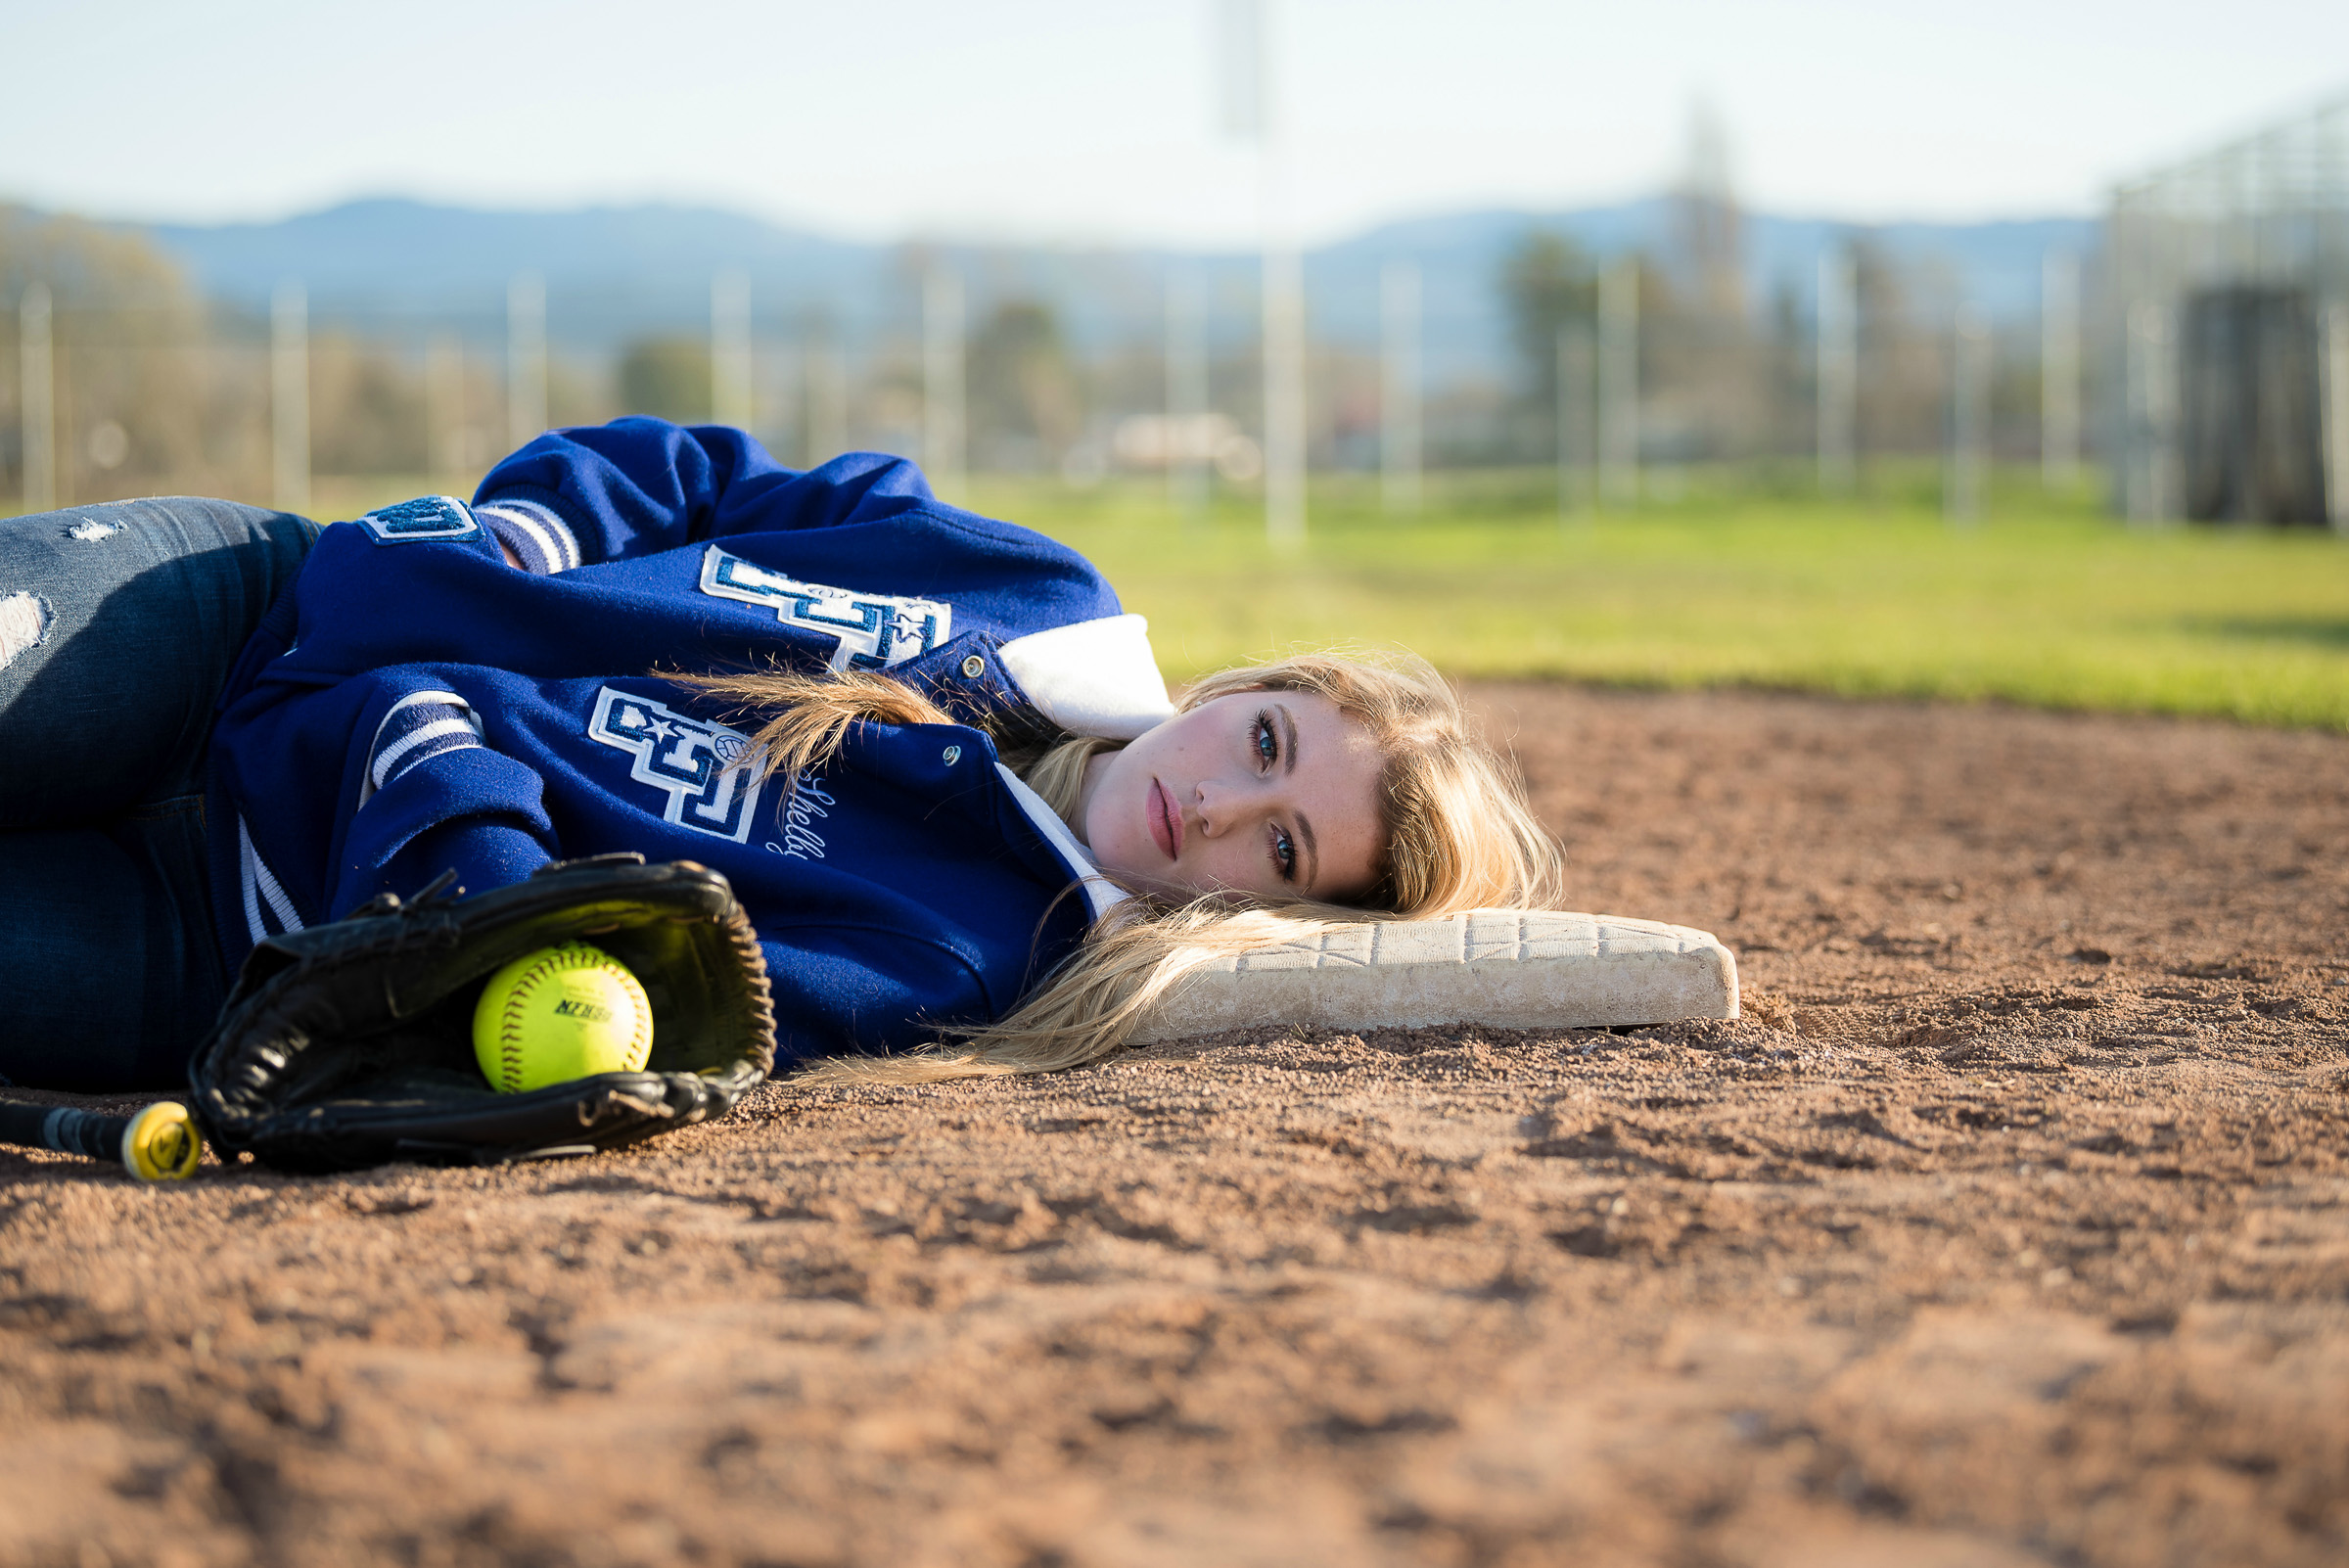 HumboldtCountySeniorPhotographer-Shelby-FortunaHigh-Softball-9.JPG